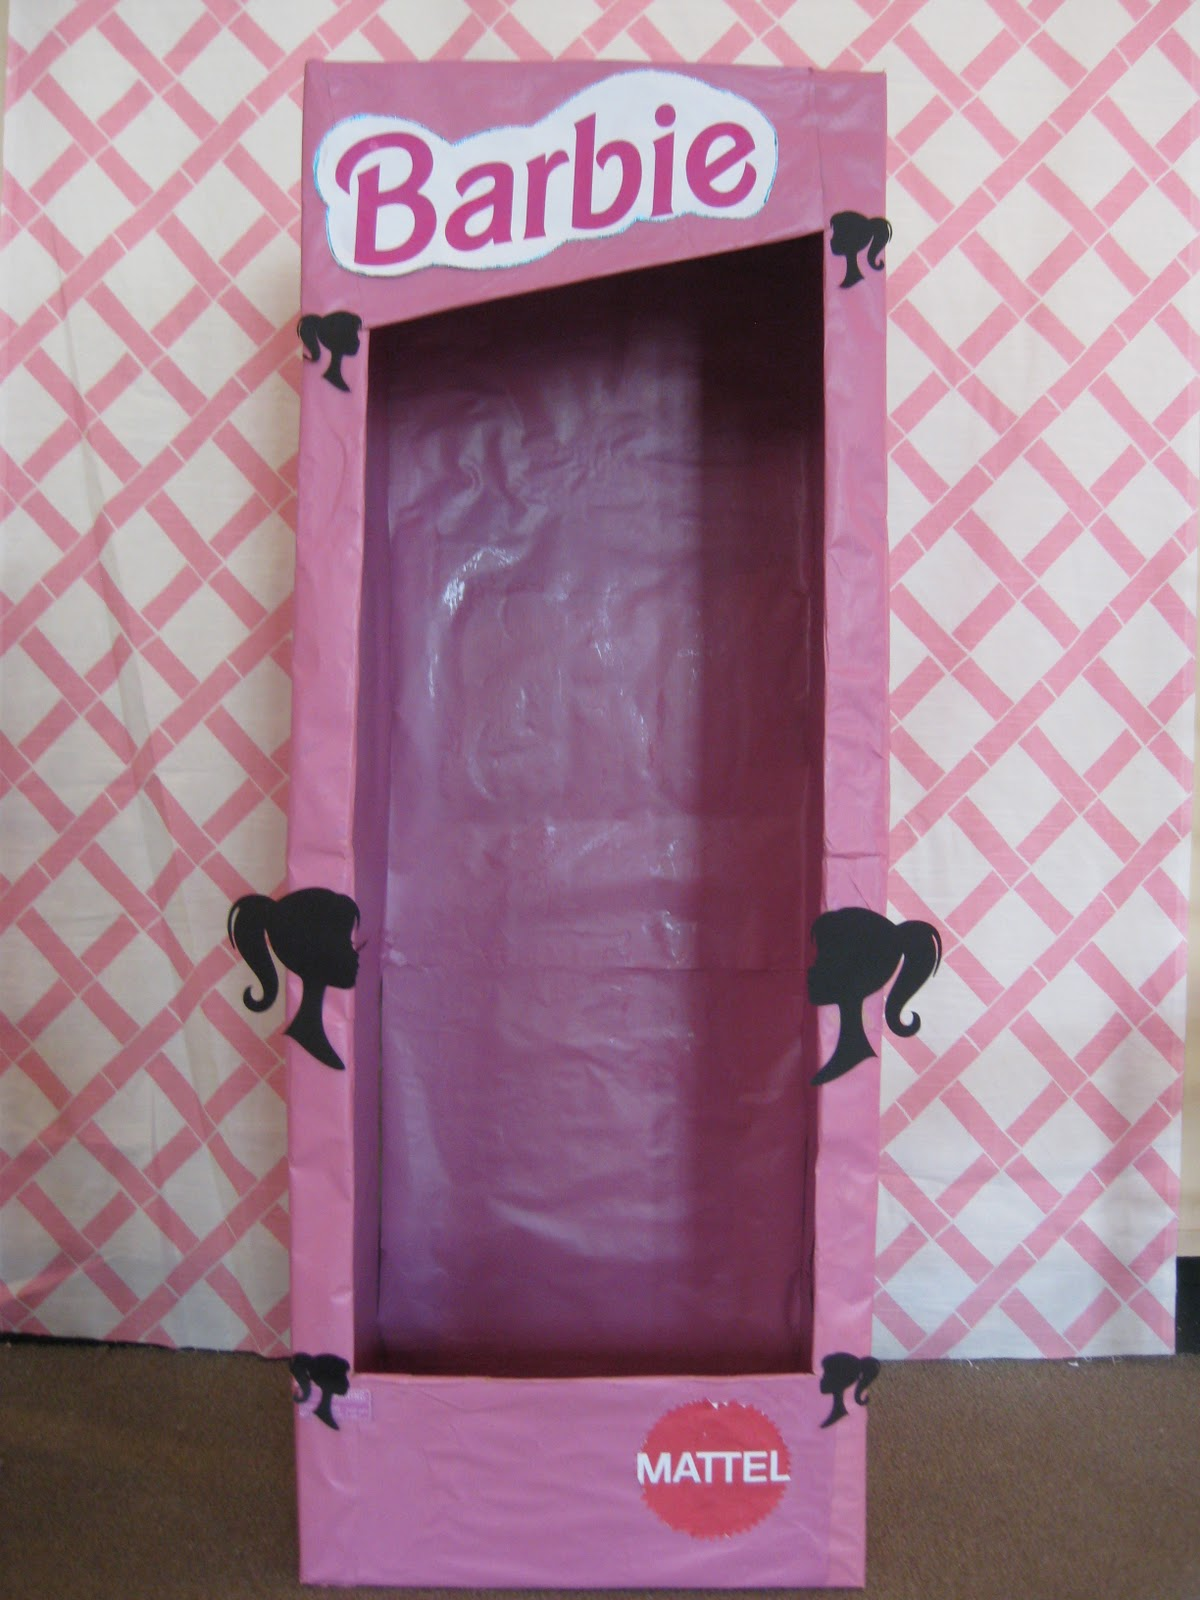 Photobox Party Swanky Chic Fete Pink Barbie Party A 5th Birthday Party